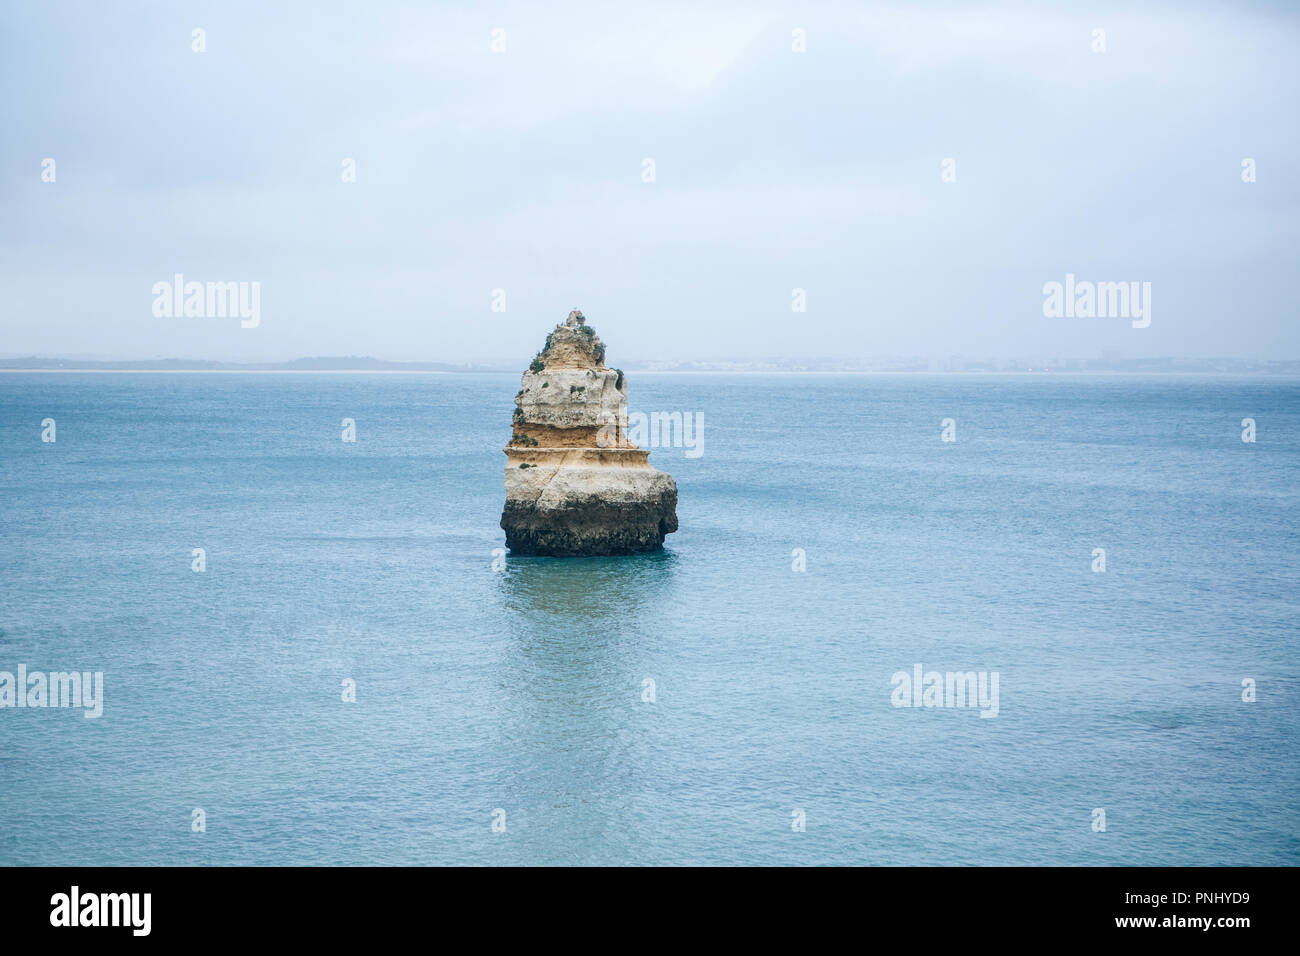 Minimalistic view of the rock in the middle of the Atlantic Ocean. Amazing natural landscape. - Stock Image